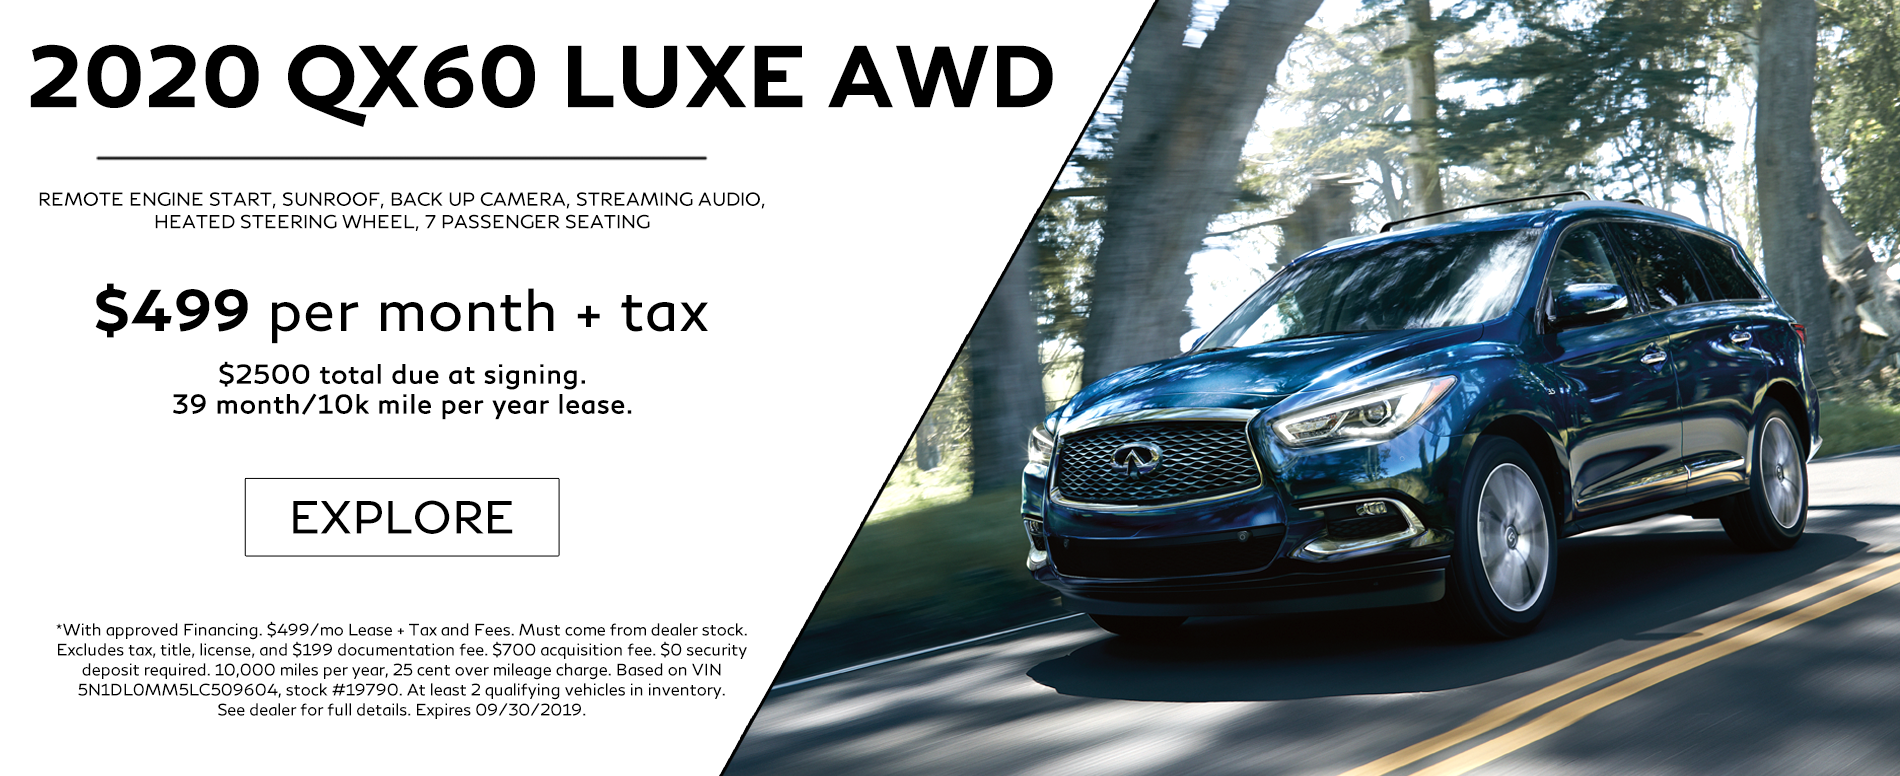 2020 QX60 Luxe AWD Lease